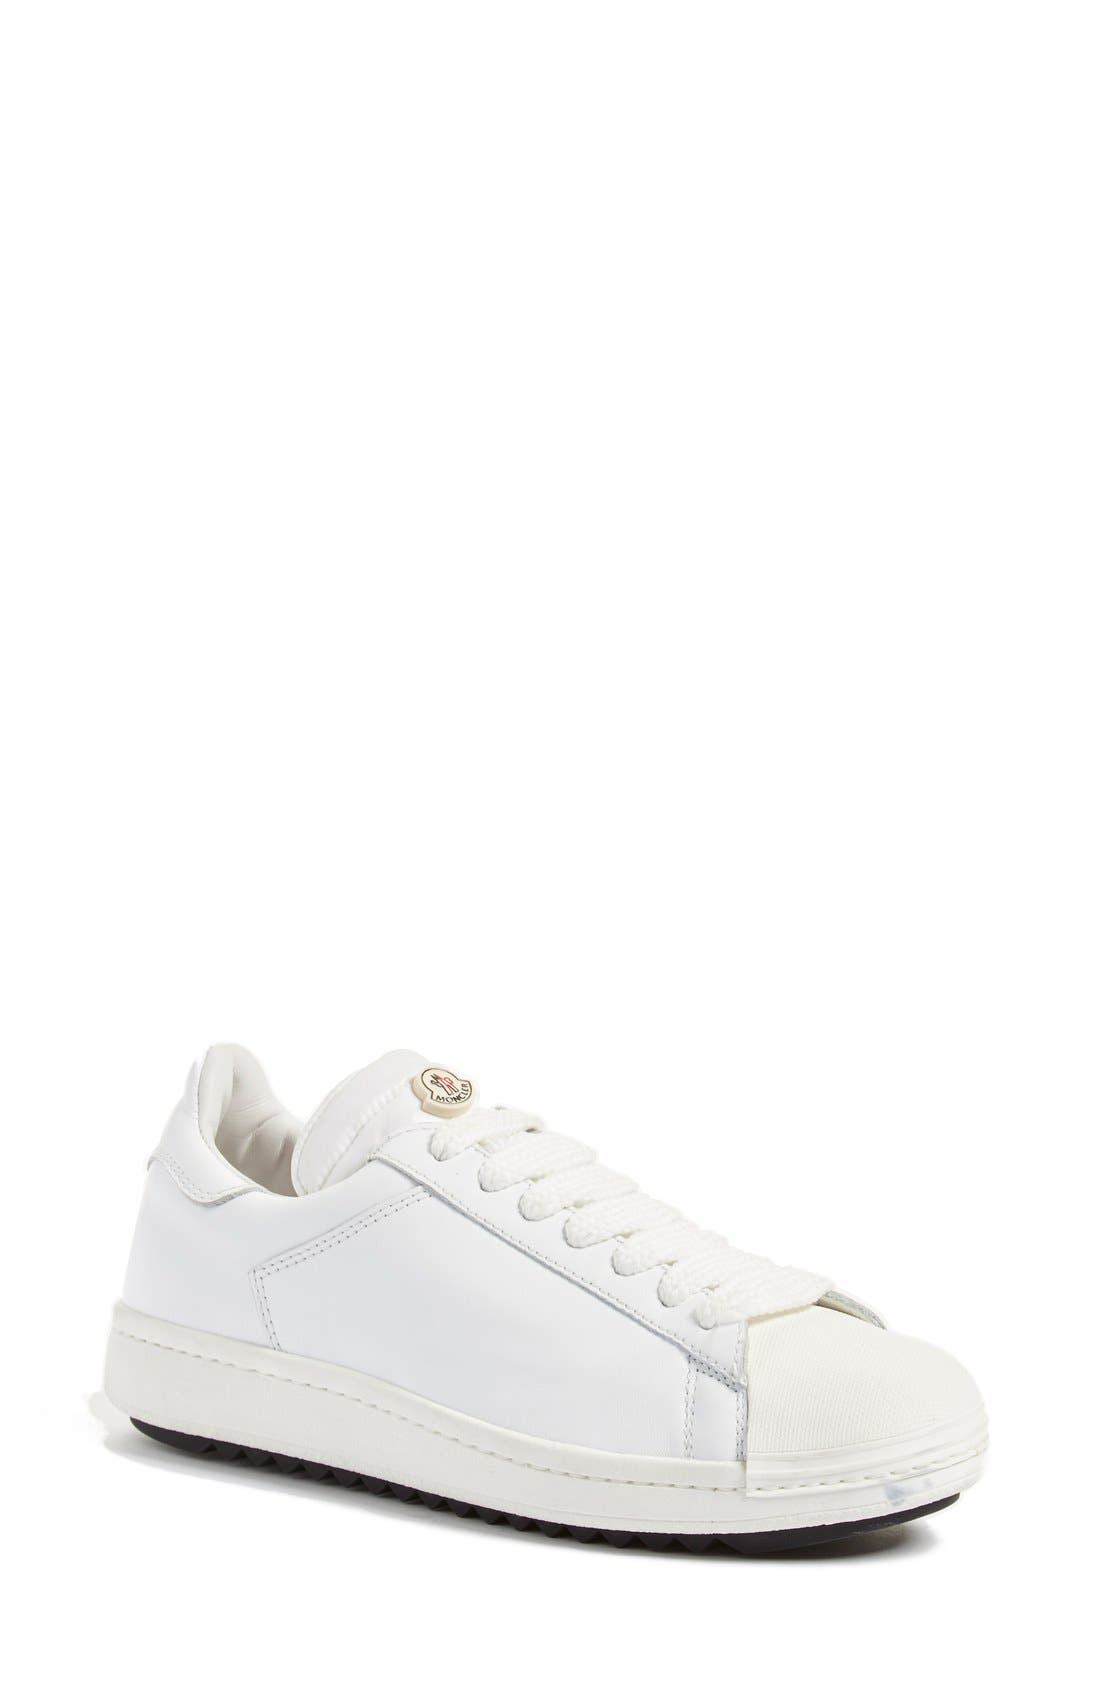 'Angeline Scarpa' Sneaker,                         Main,                         color, White Leather